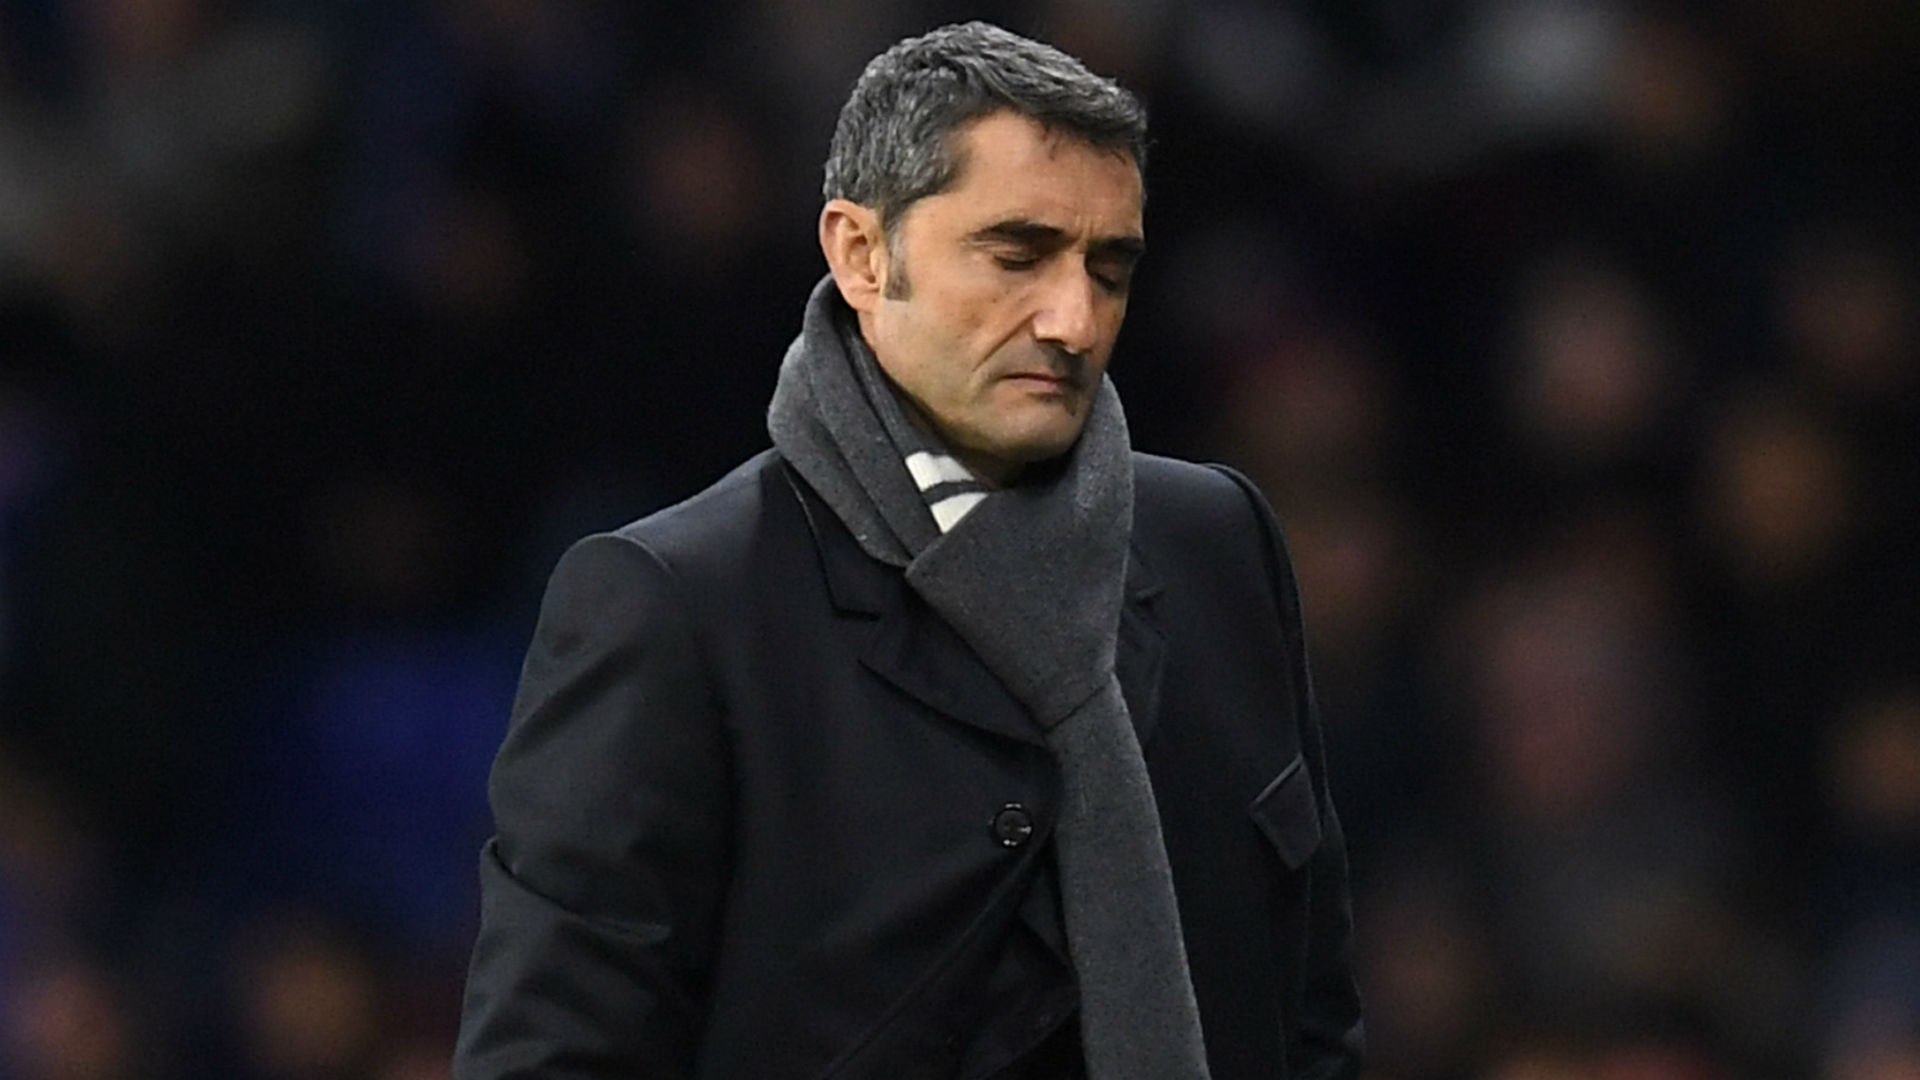 Valverde takes Barcelona training ahead of meeting with board